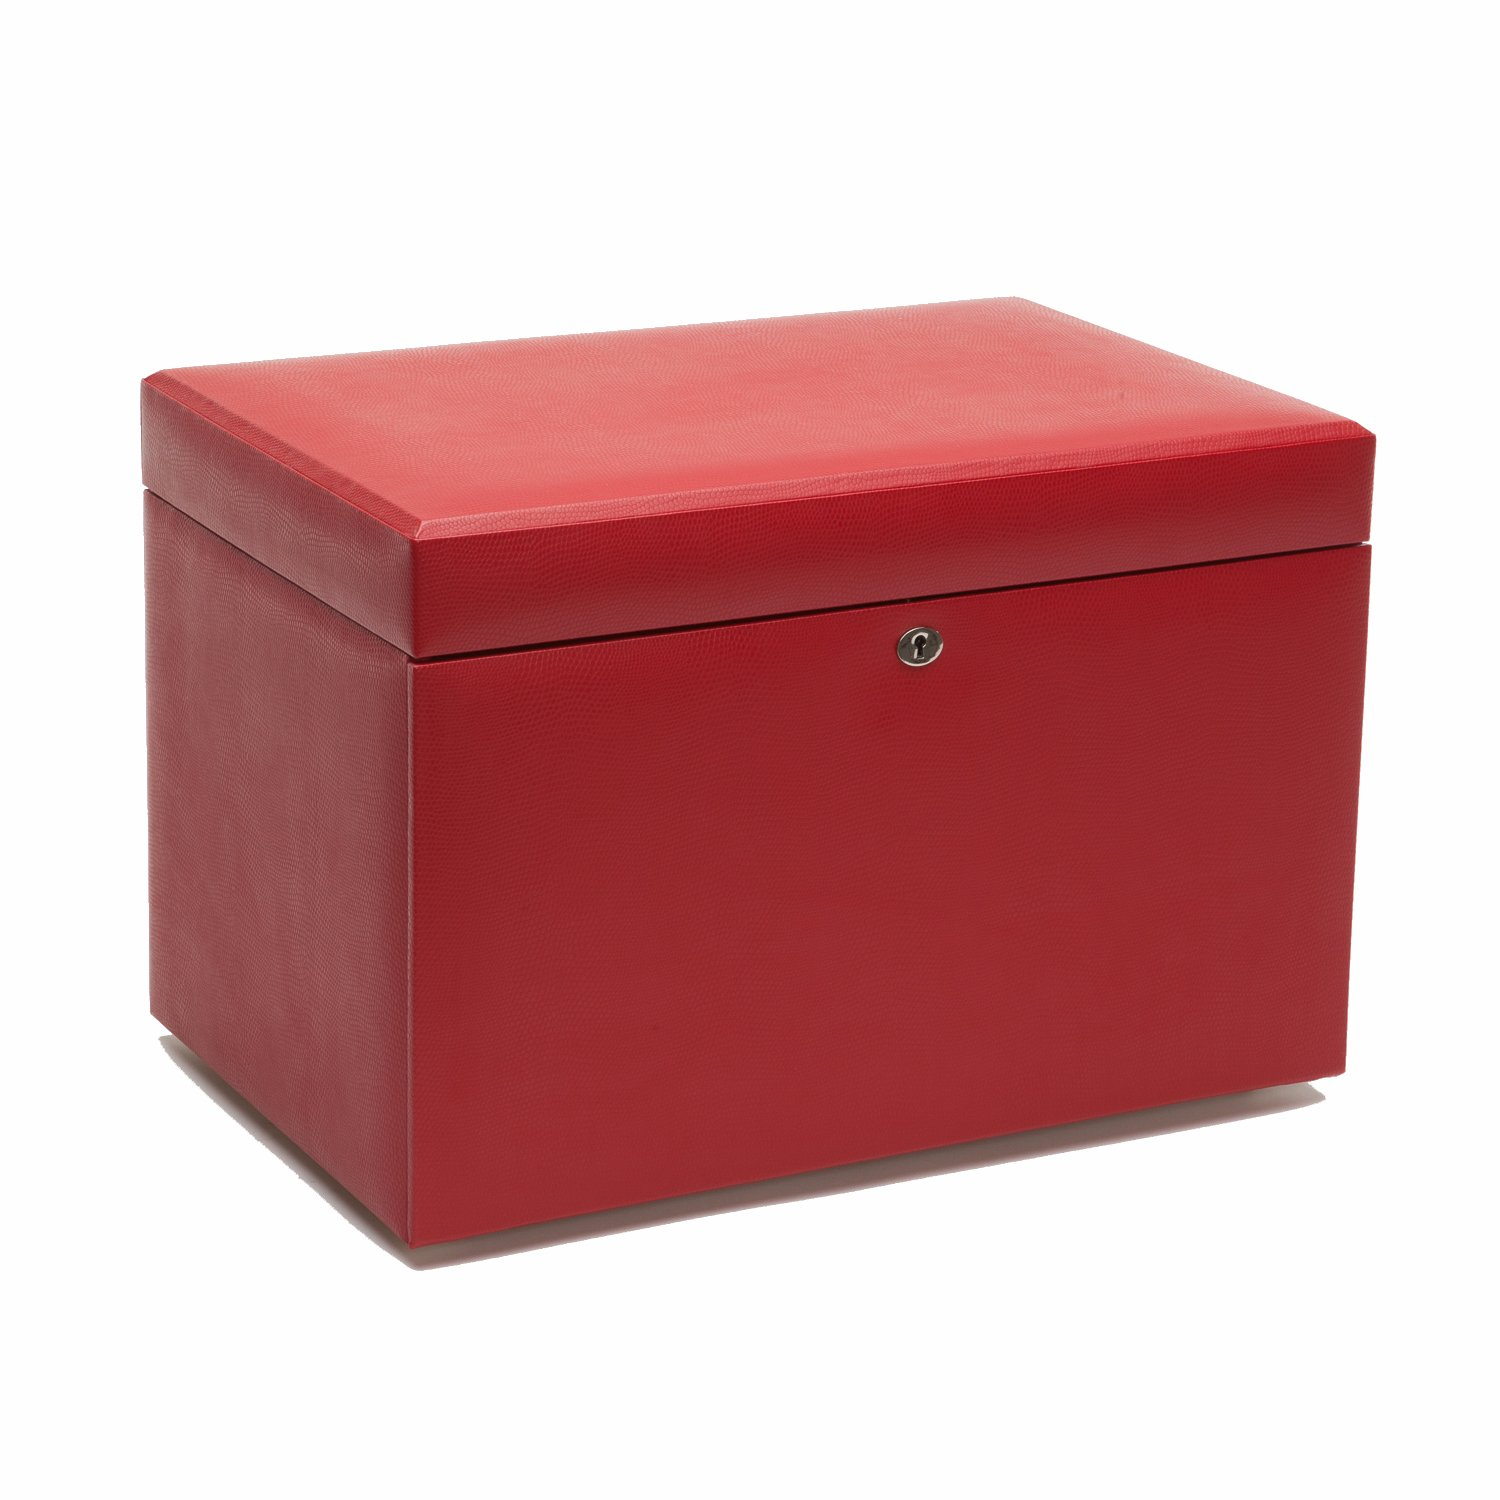 WOLF 103216RD Large Jewelry Box, Red